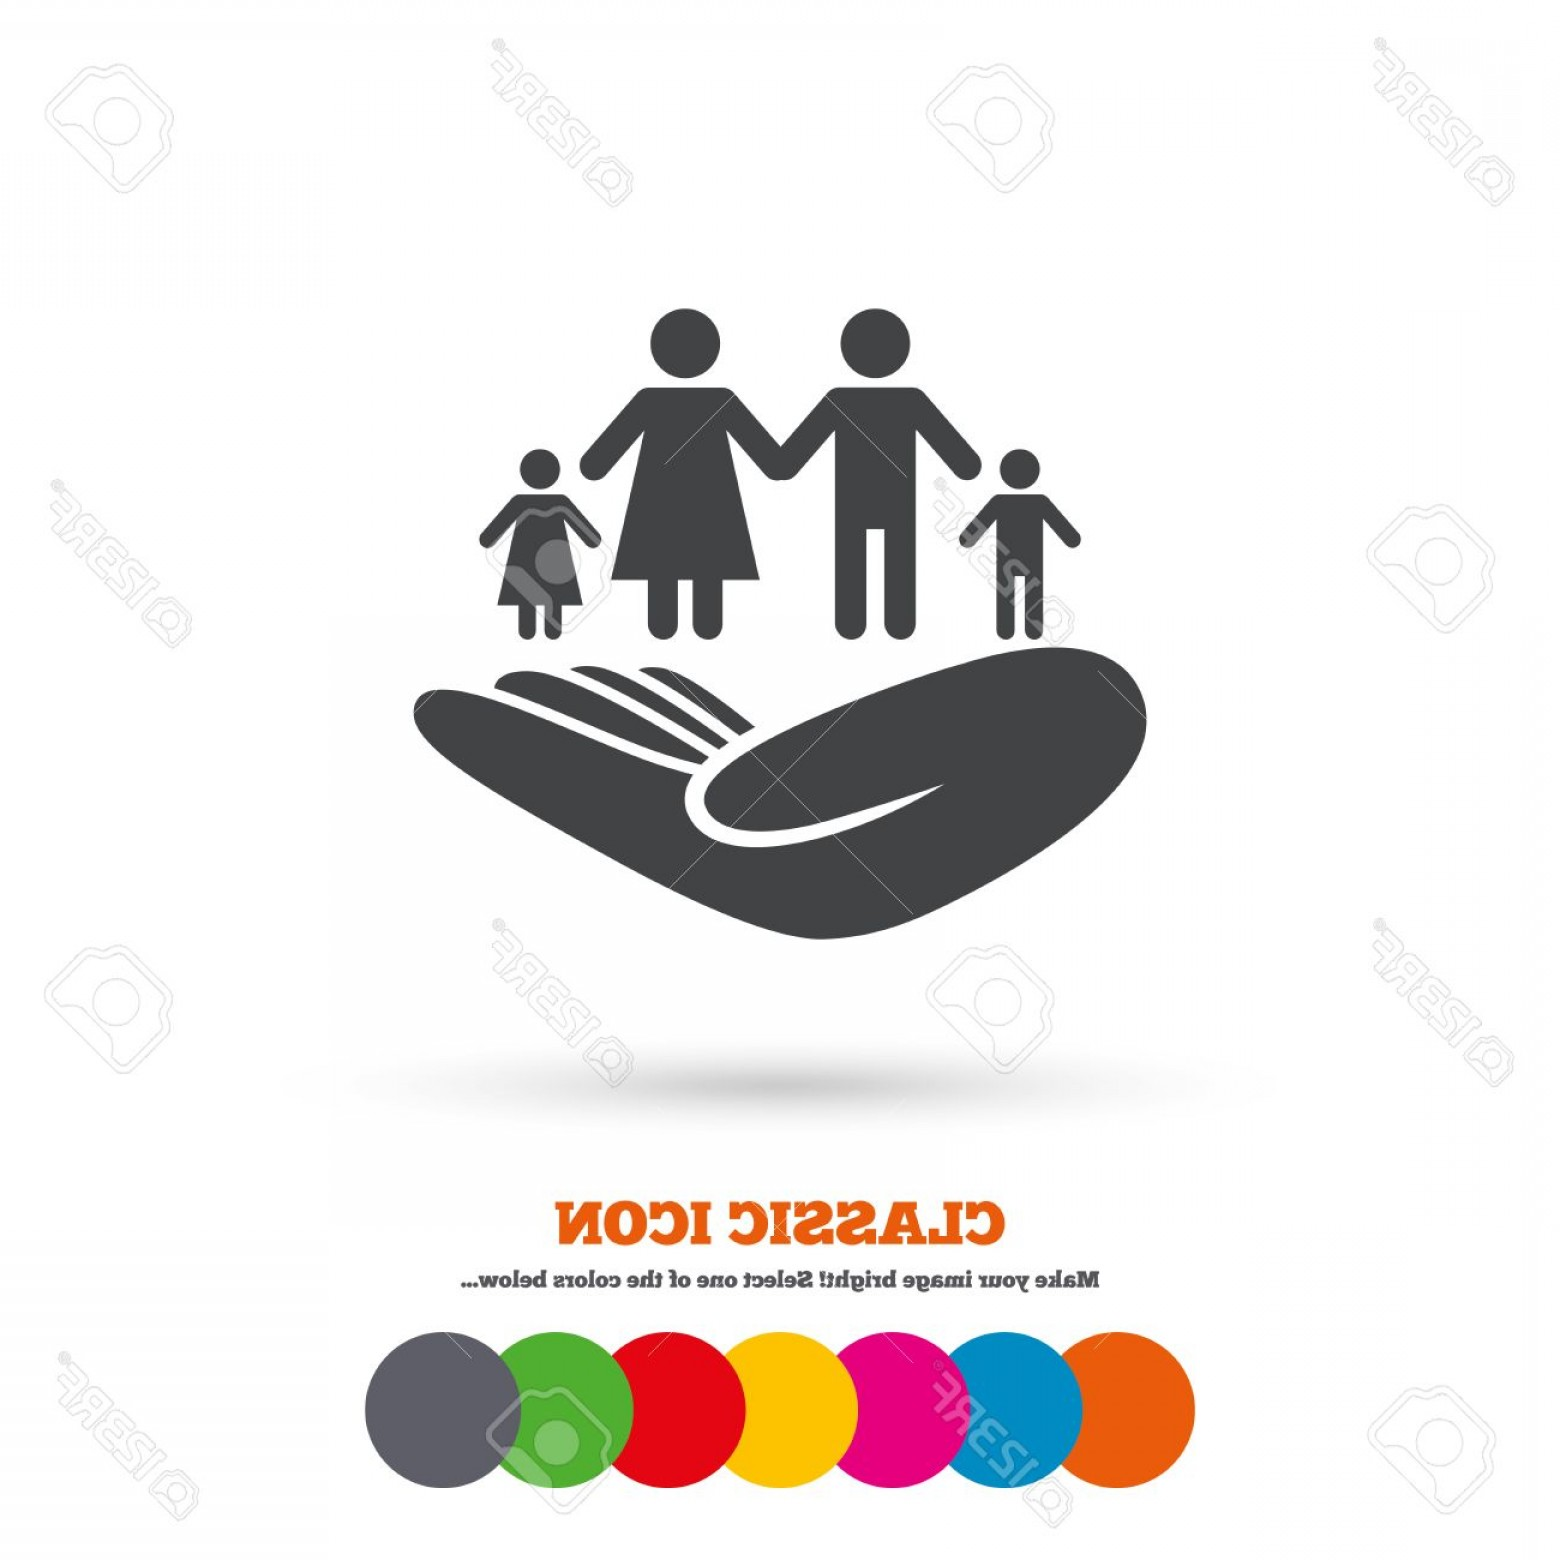 Vector Health Insurance: Photostock Vector Family Life Insurance Sign Hand Holds Human Group Symbol Health Insurance Classic Flat Icon Colored